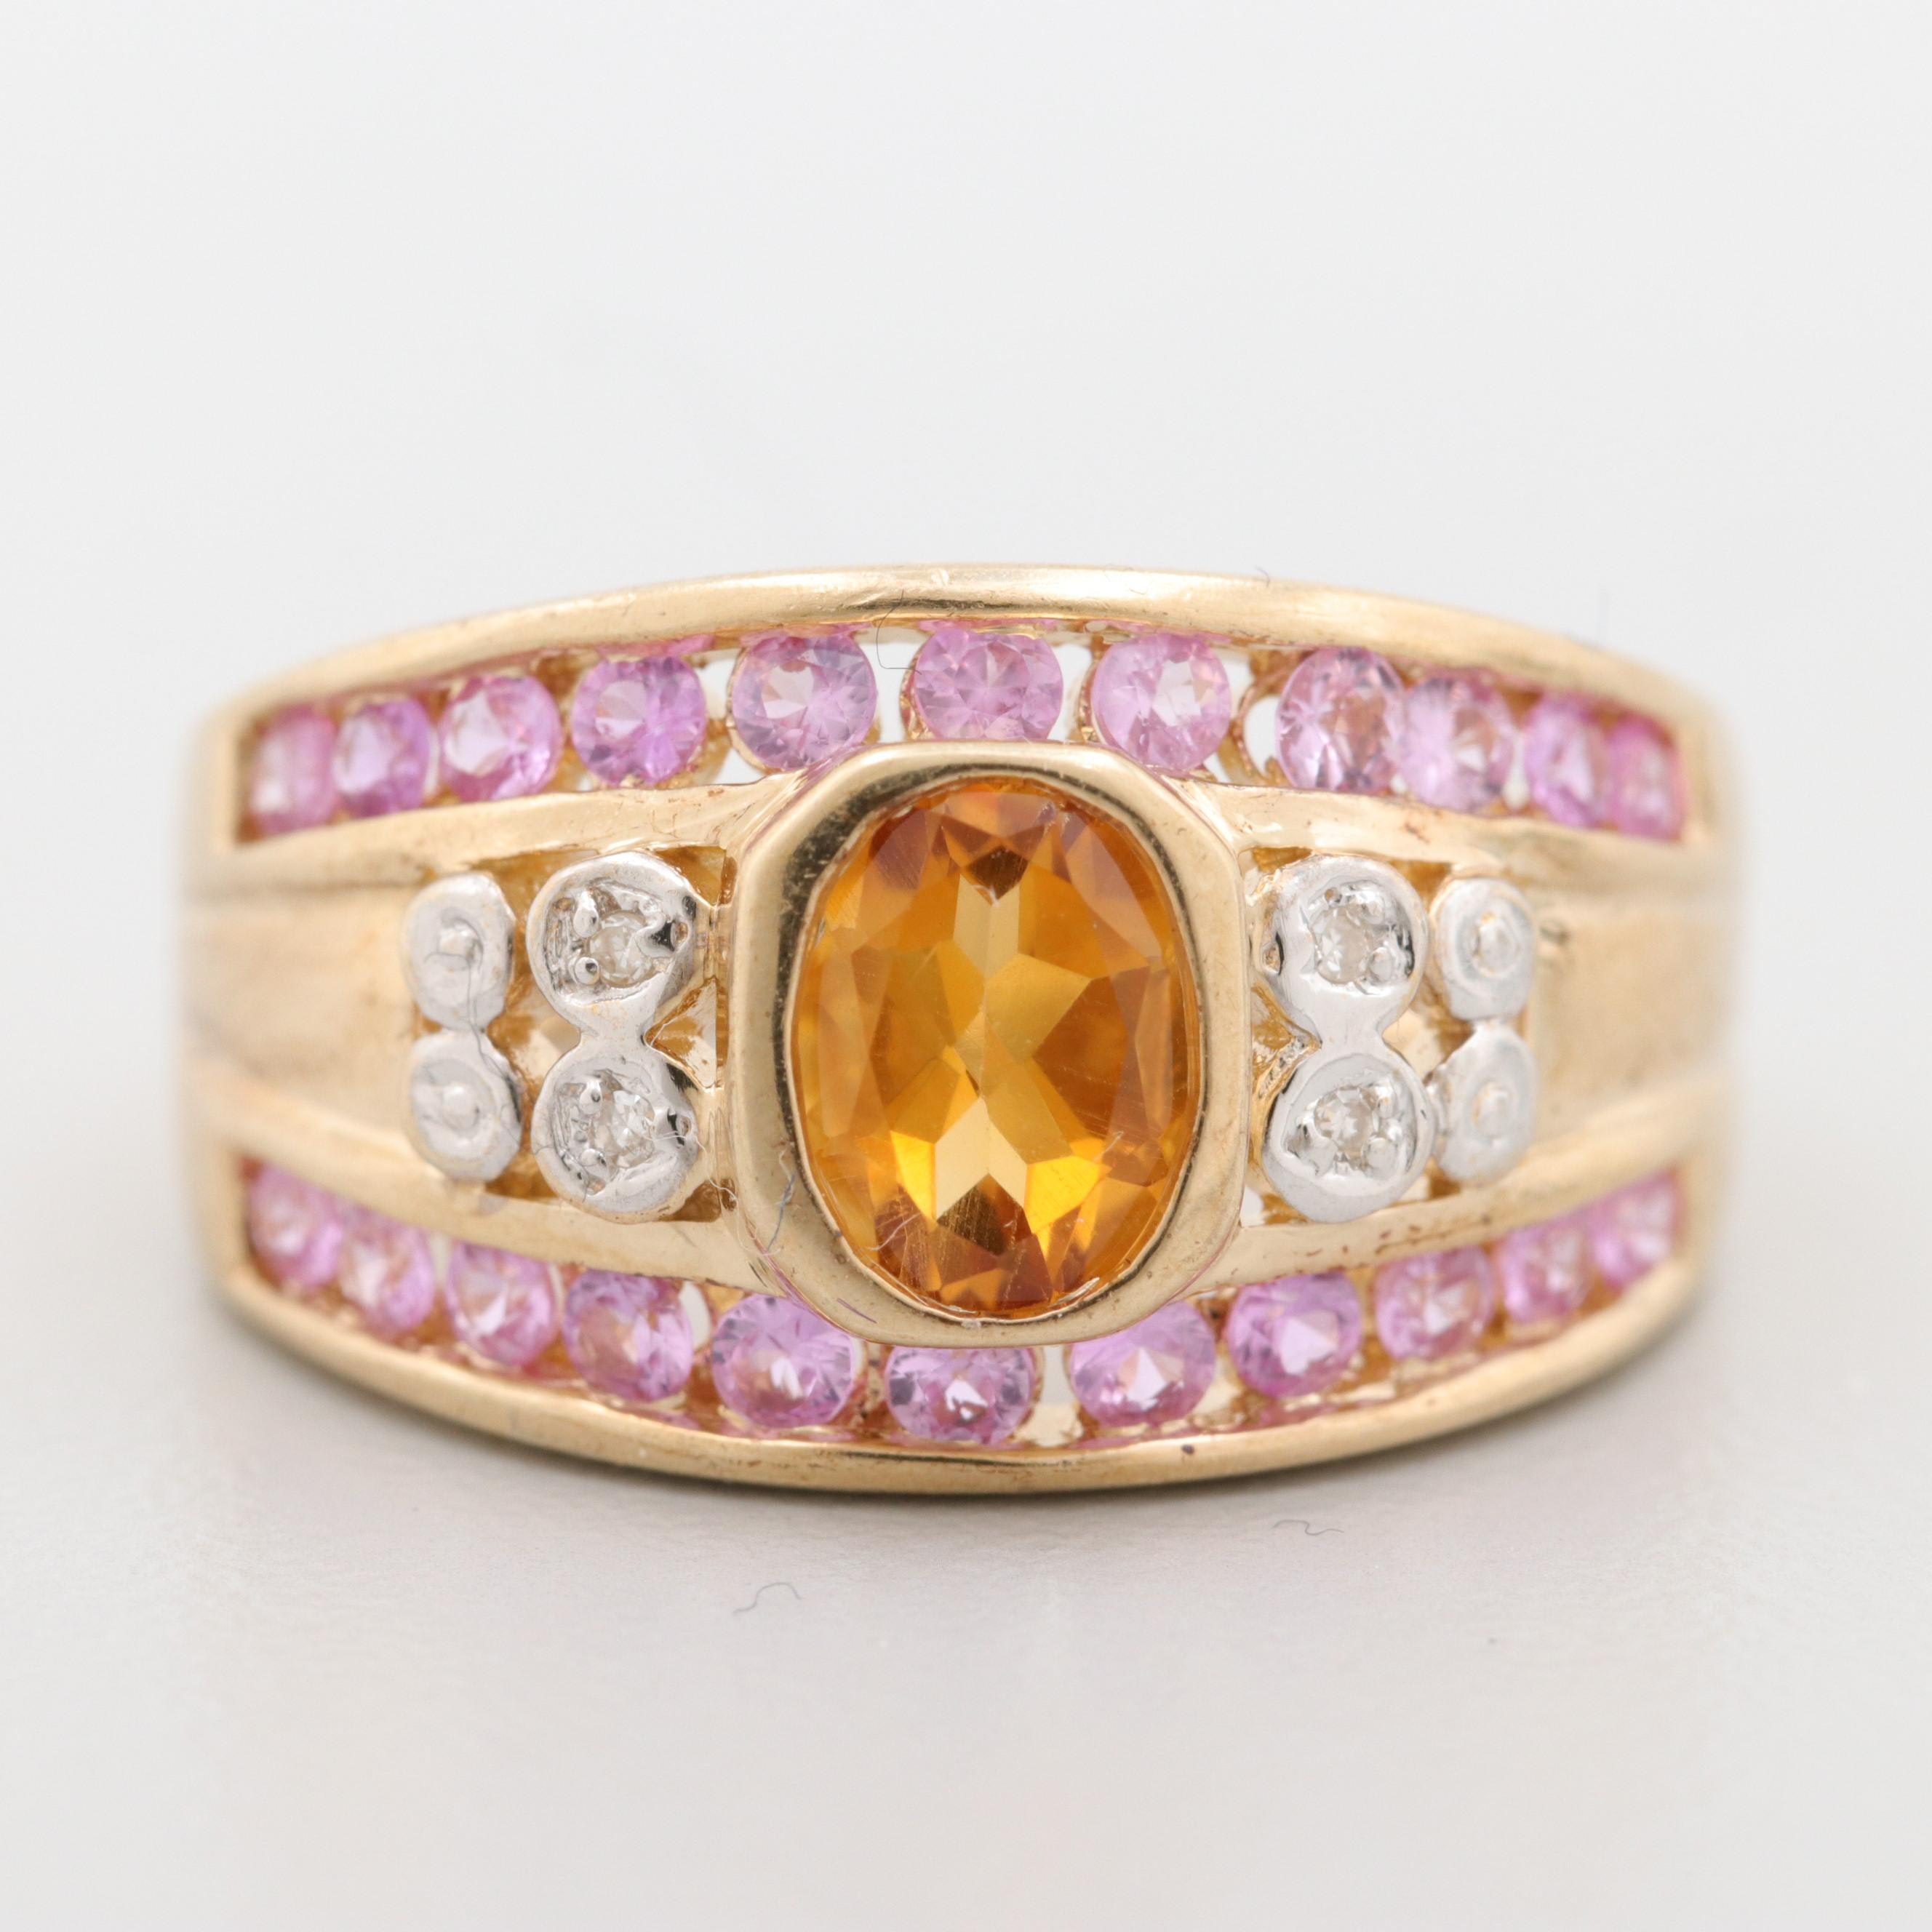 10K Yellow Gold Citrine, Diamond and Sapphire Ring